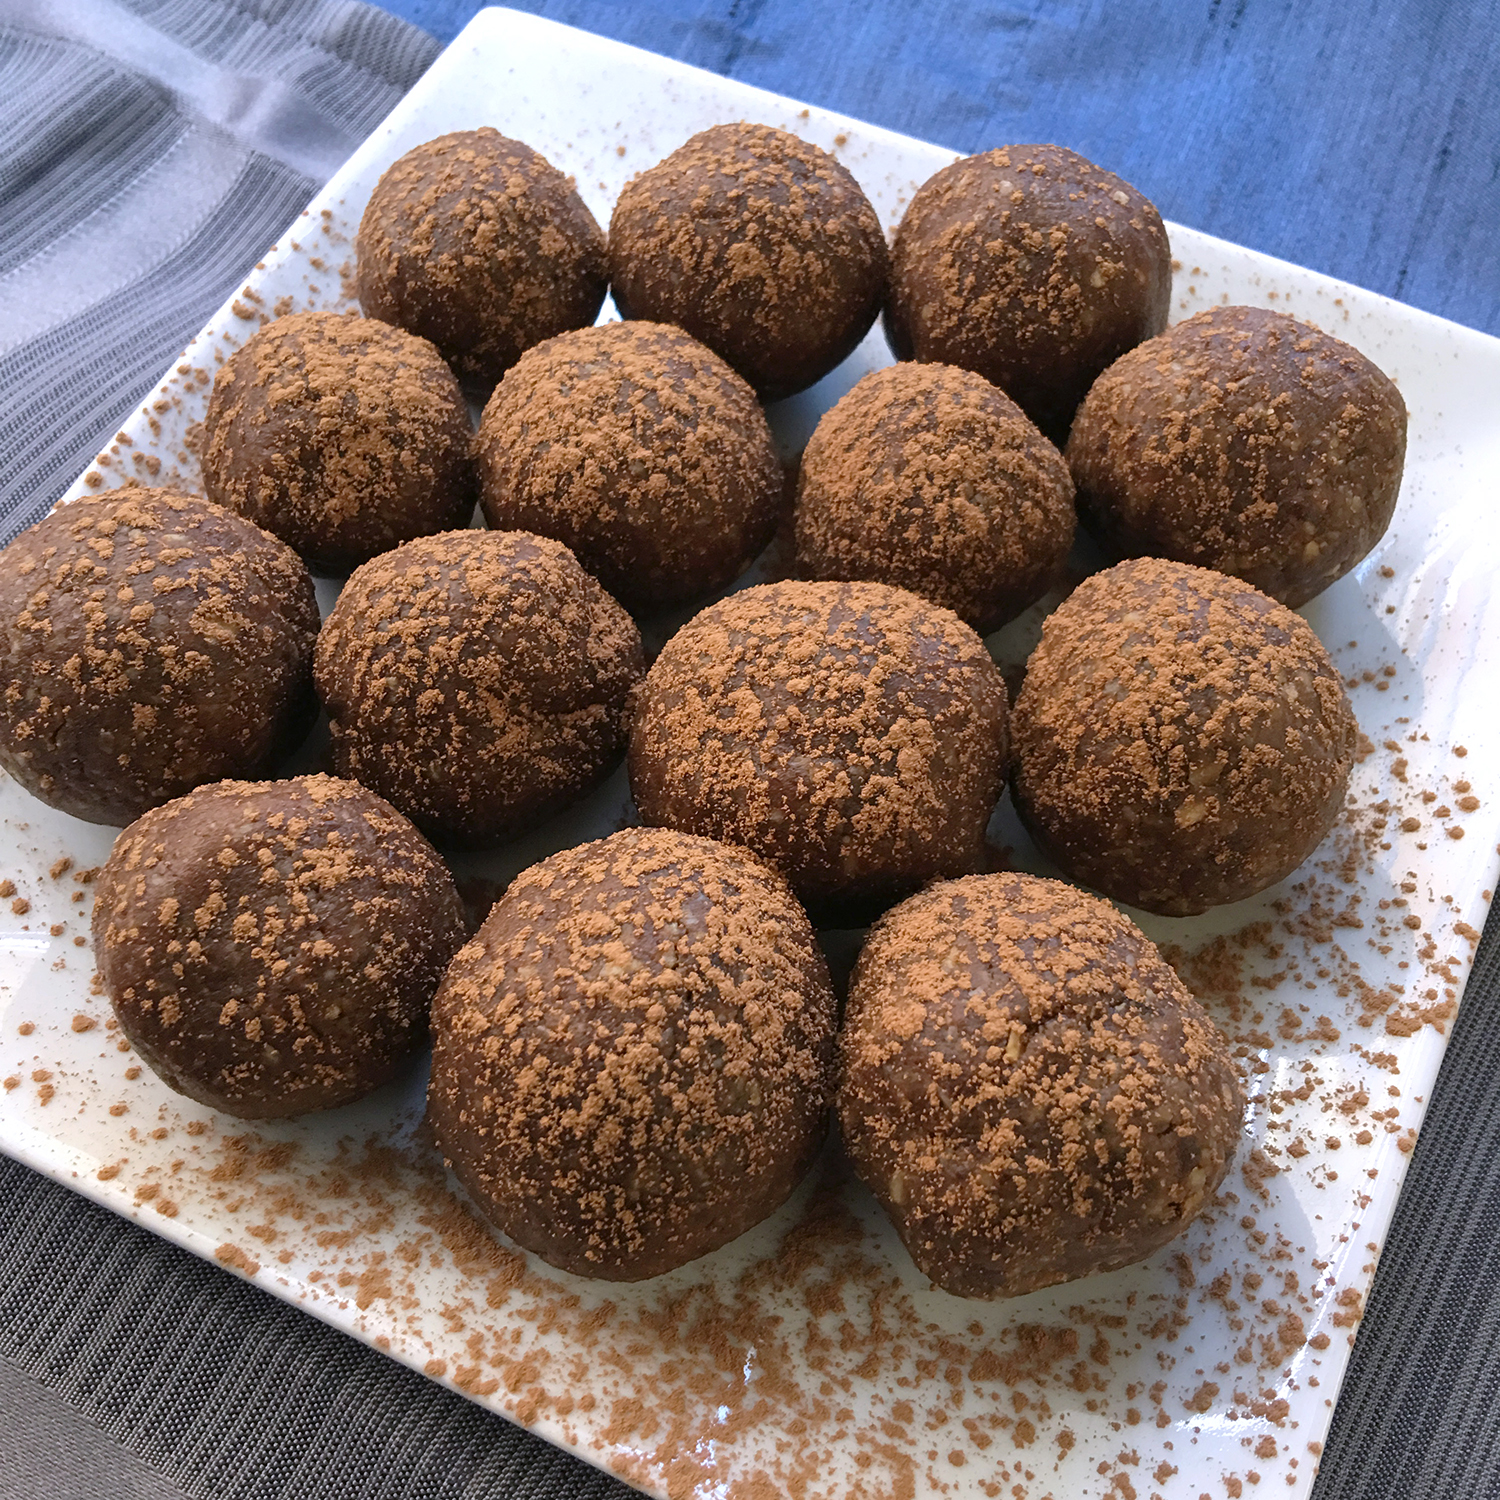 Top 8 Free Power Balls by The Allergy Chef